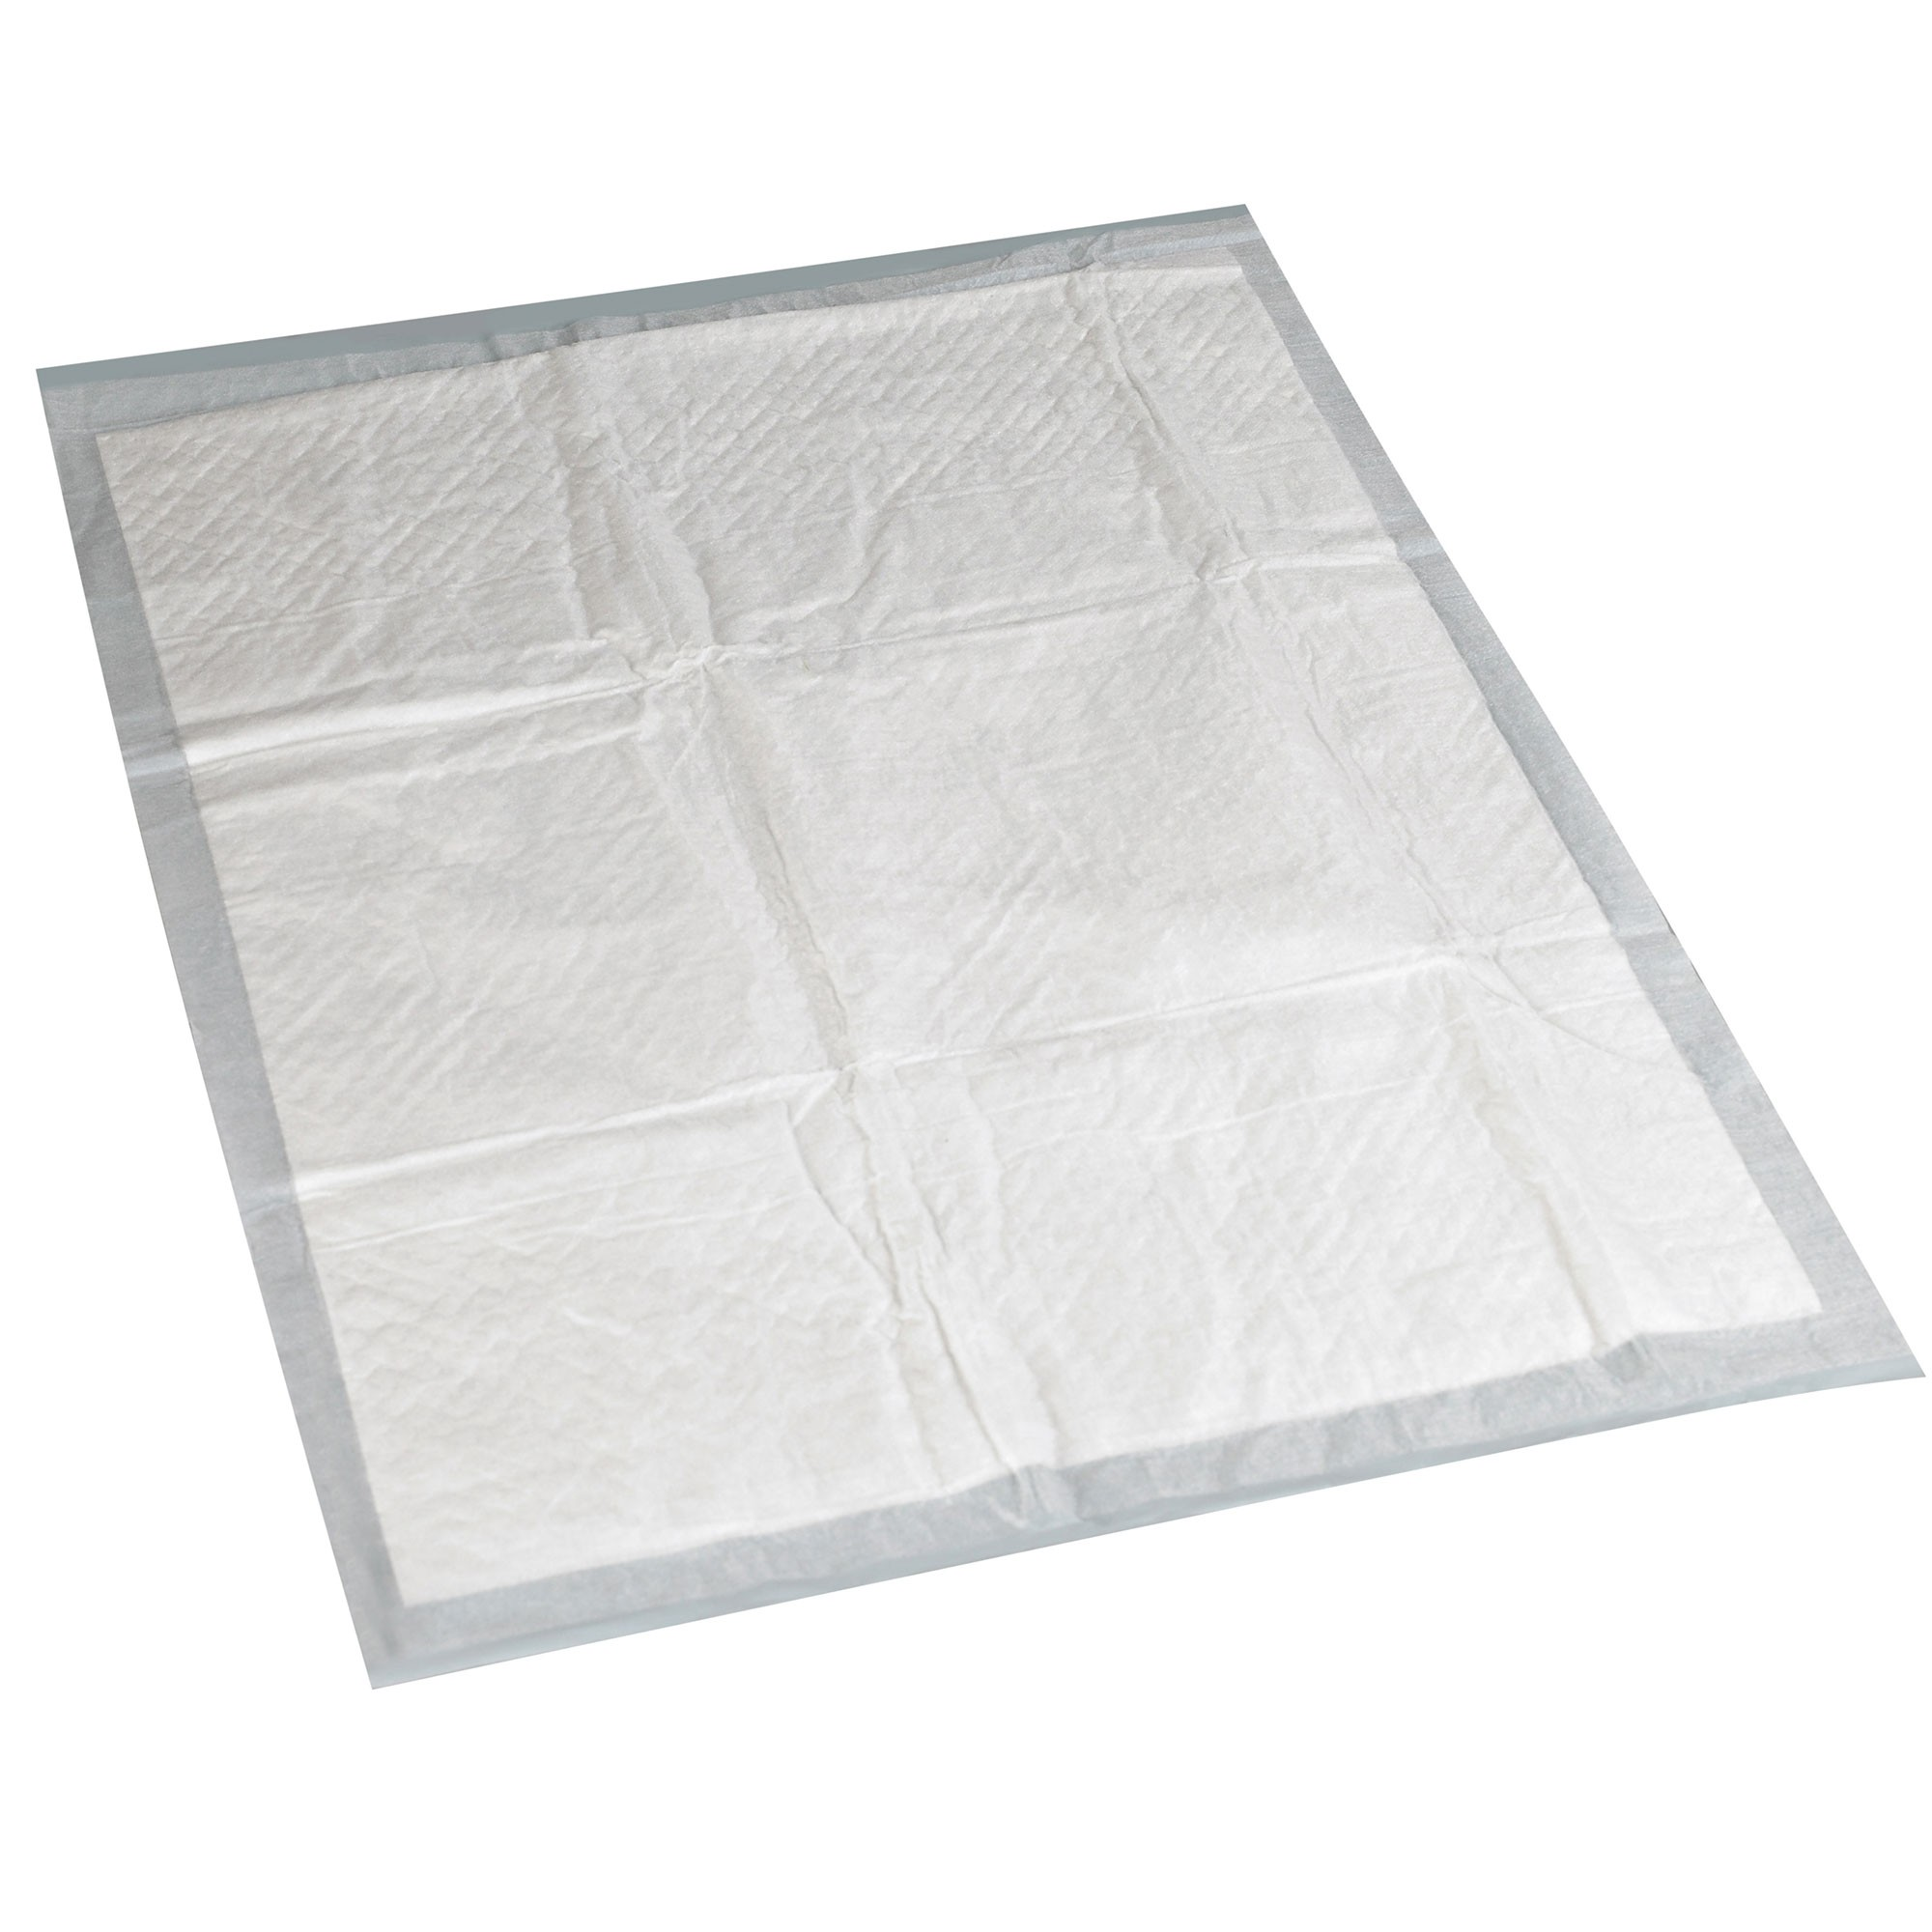 10-of-the-best-baby-changing-mats_190827